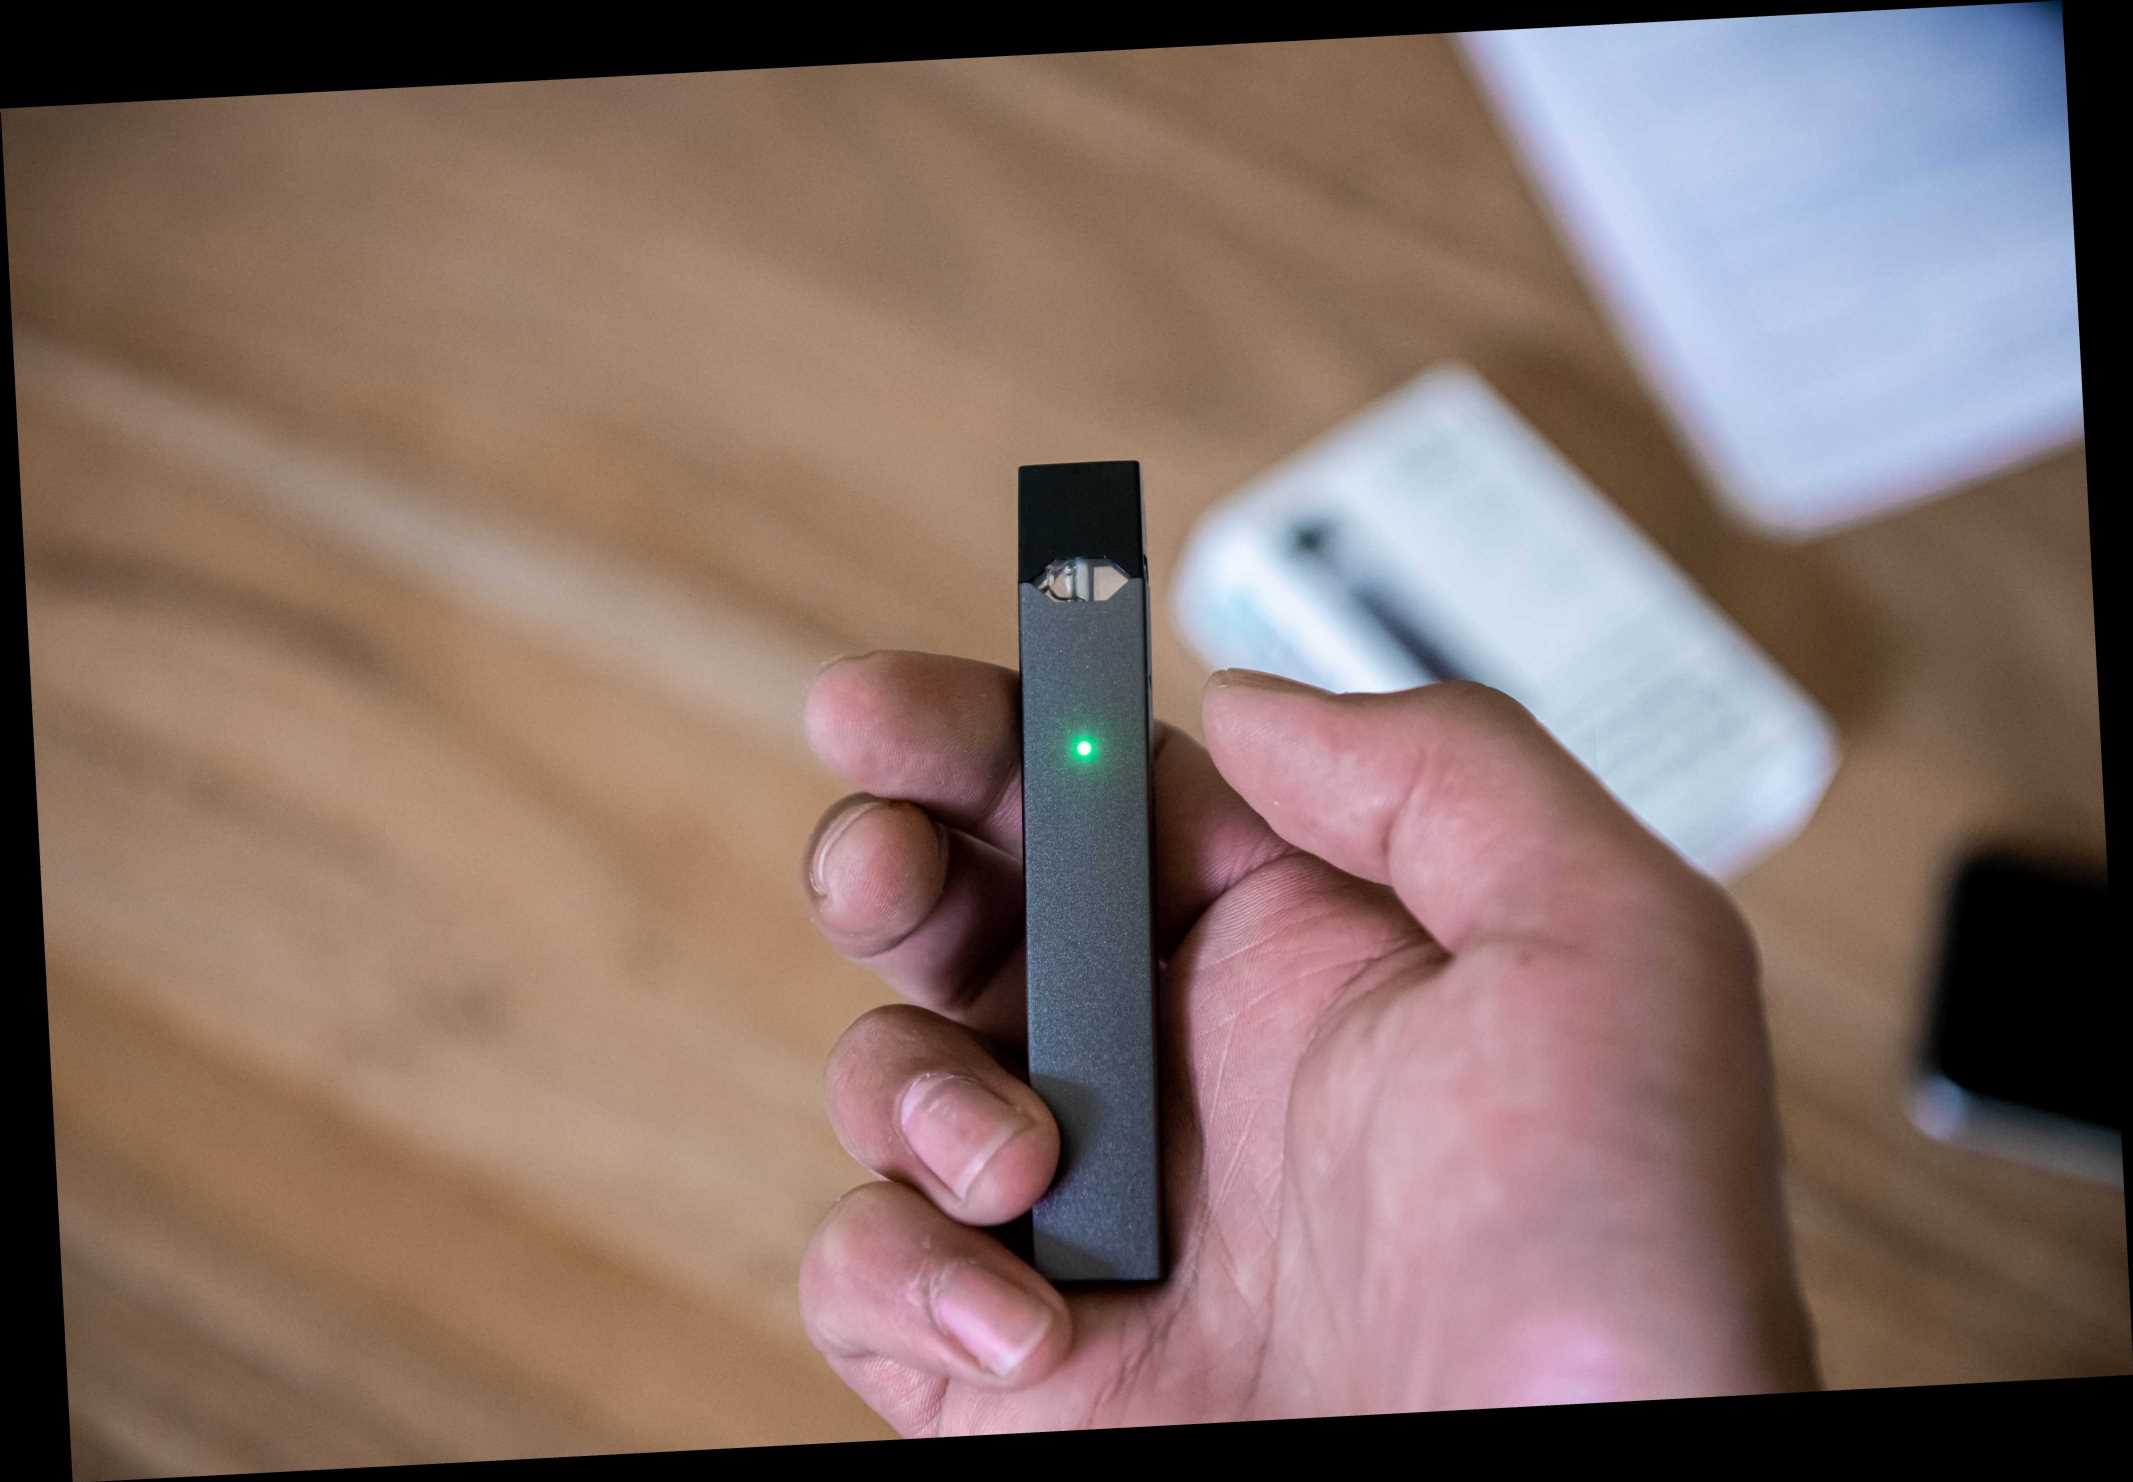 States Are Filing Lawsuits Against Juul For Allegedly Targeting Teens